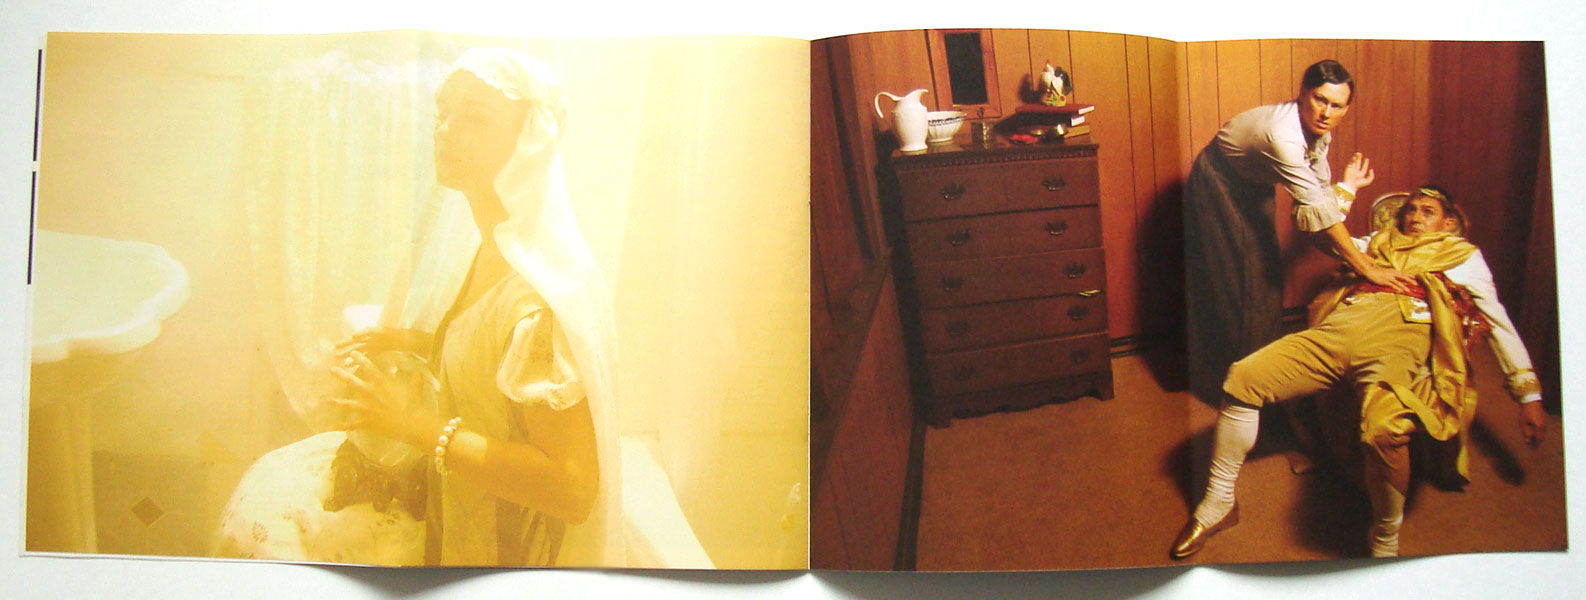 Gallery guide, Catherine Sullivan: Triangle of Need, Walker Art Center, 2007 (collaboration with Layla Tweedie-Cullen)